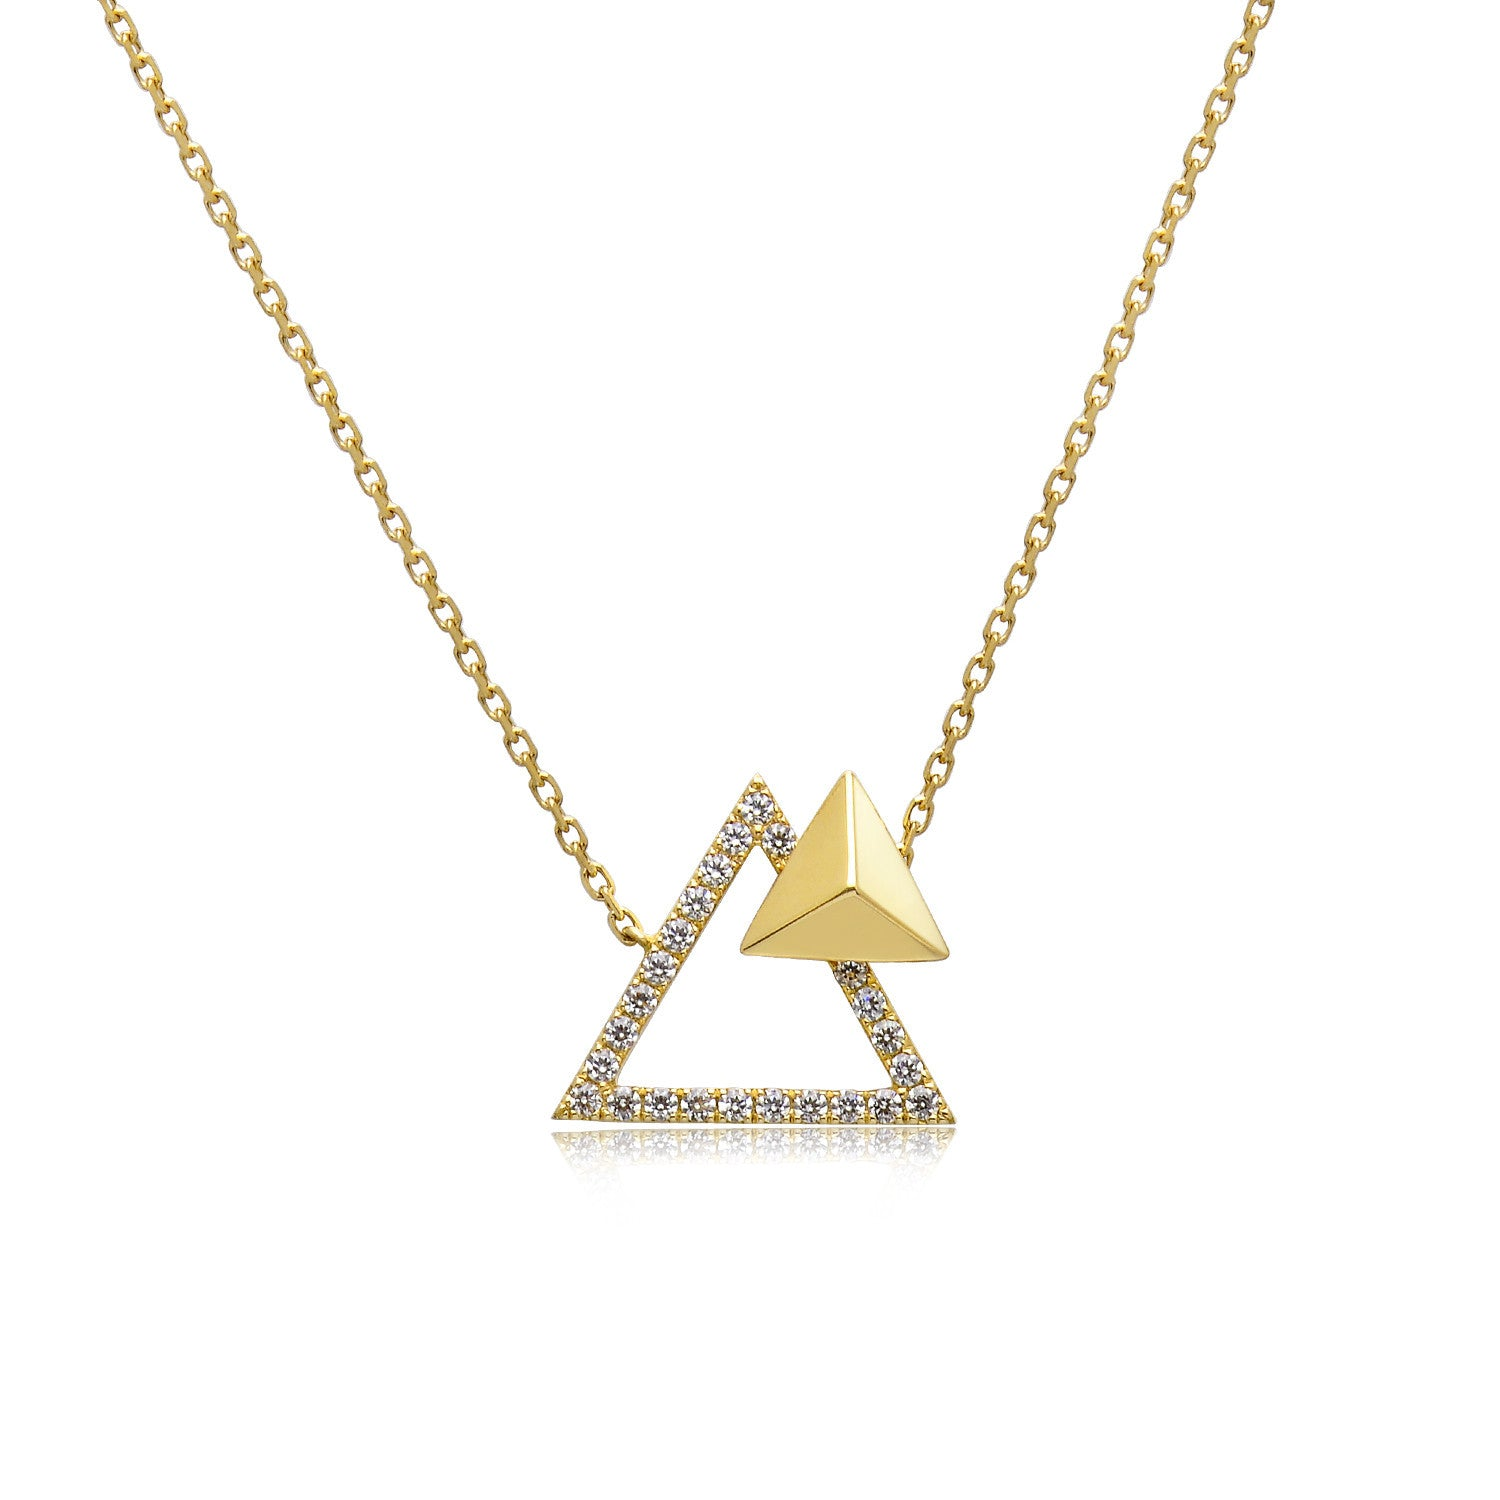 14k Gold Diamond Triangle Stud Necklace